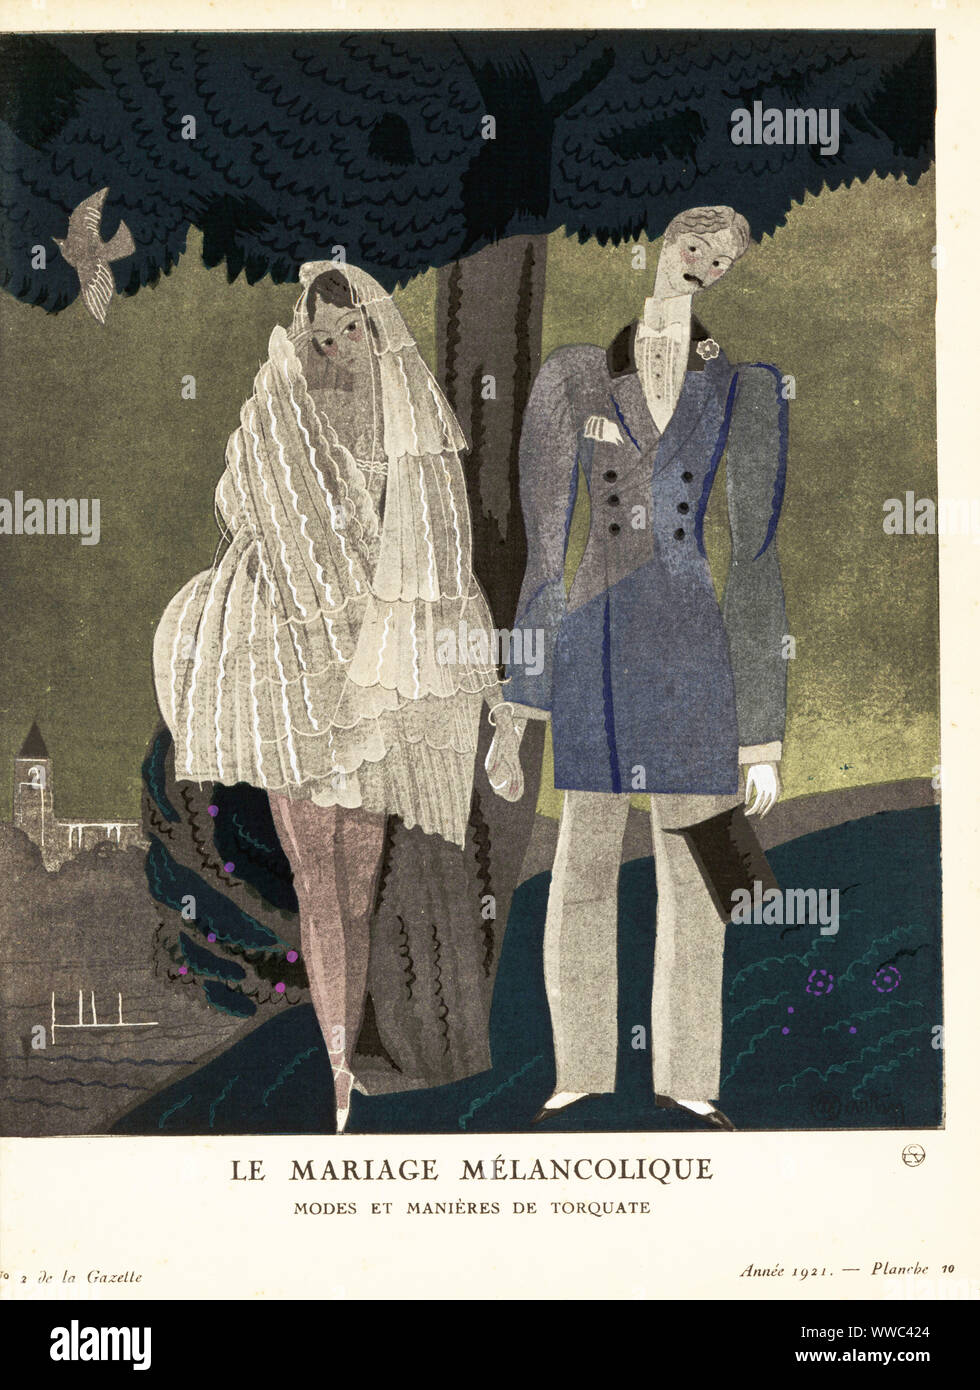 Bride in short wedding dress and groom on the island of Torquate. Le Mariage Mélancolique: variété du mariage, tel qu'il est célébré à Torquate. Plate 10, Vol. 1.2, 1921. Handcoloured pochoir lithograph by Charles Martin from Lucien Vogel's Le Bon Genre: 100 Plates from Gazette du Bon Ton, Brentano's, Paris, 1922. Stock Photo